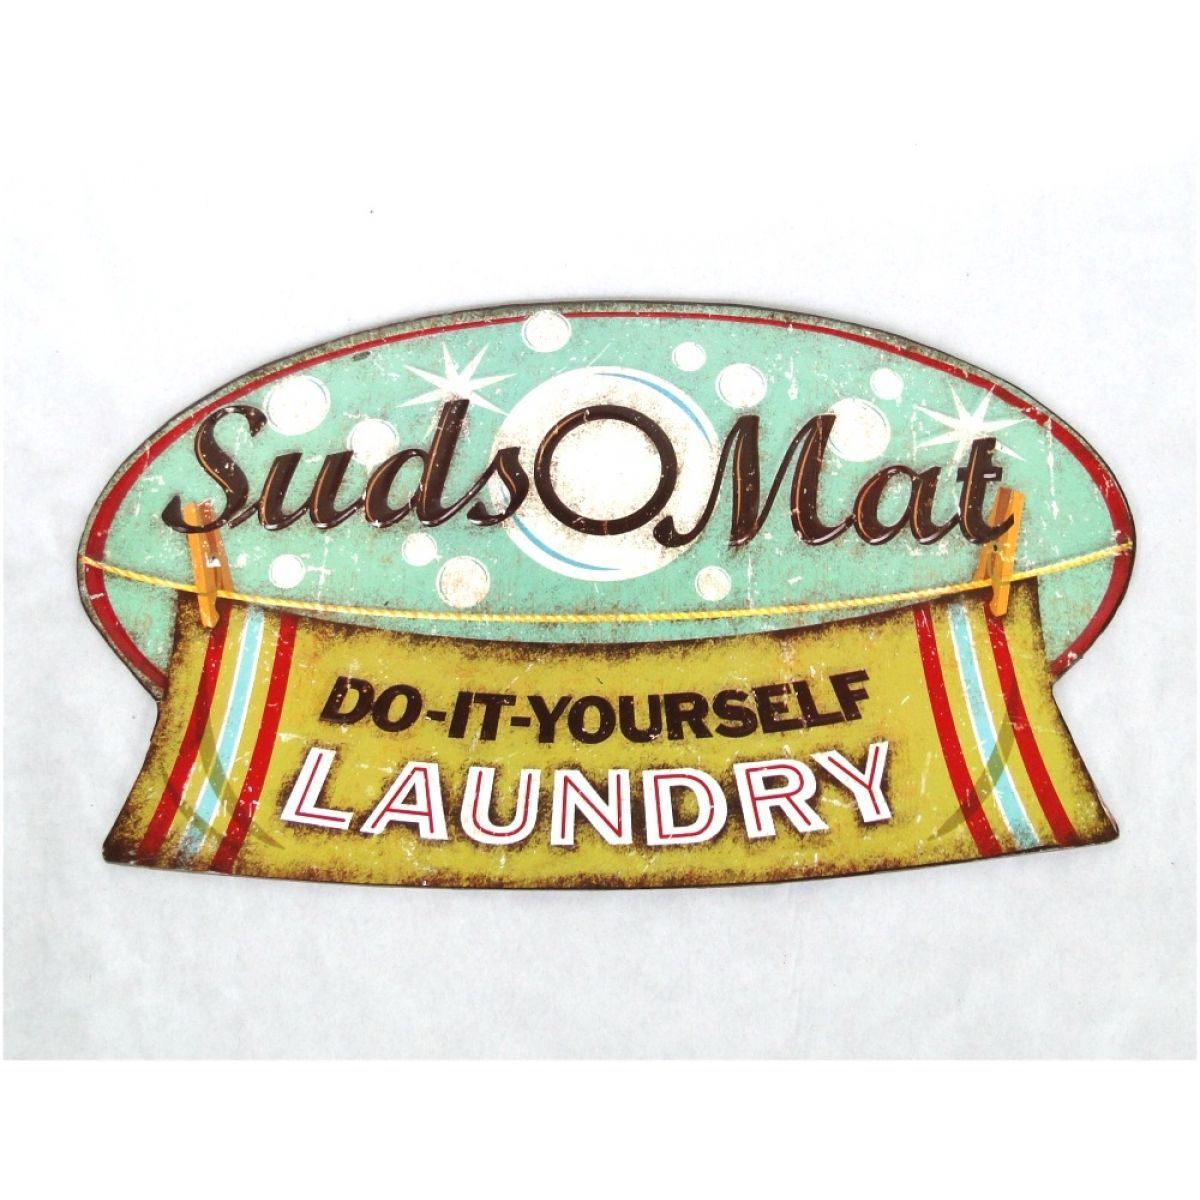 Old Laundromat Signs Glamorous Tin Suds Laundromat Retro Wall Sign Vintage Replica  Laundry 2018